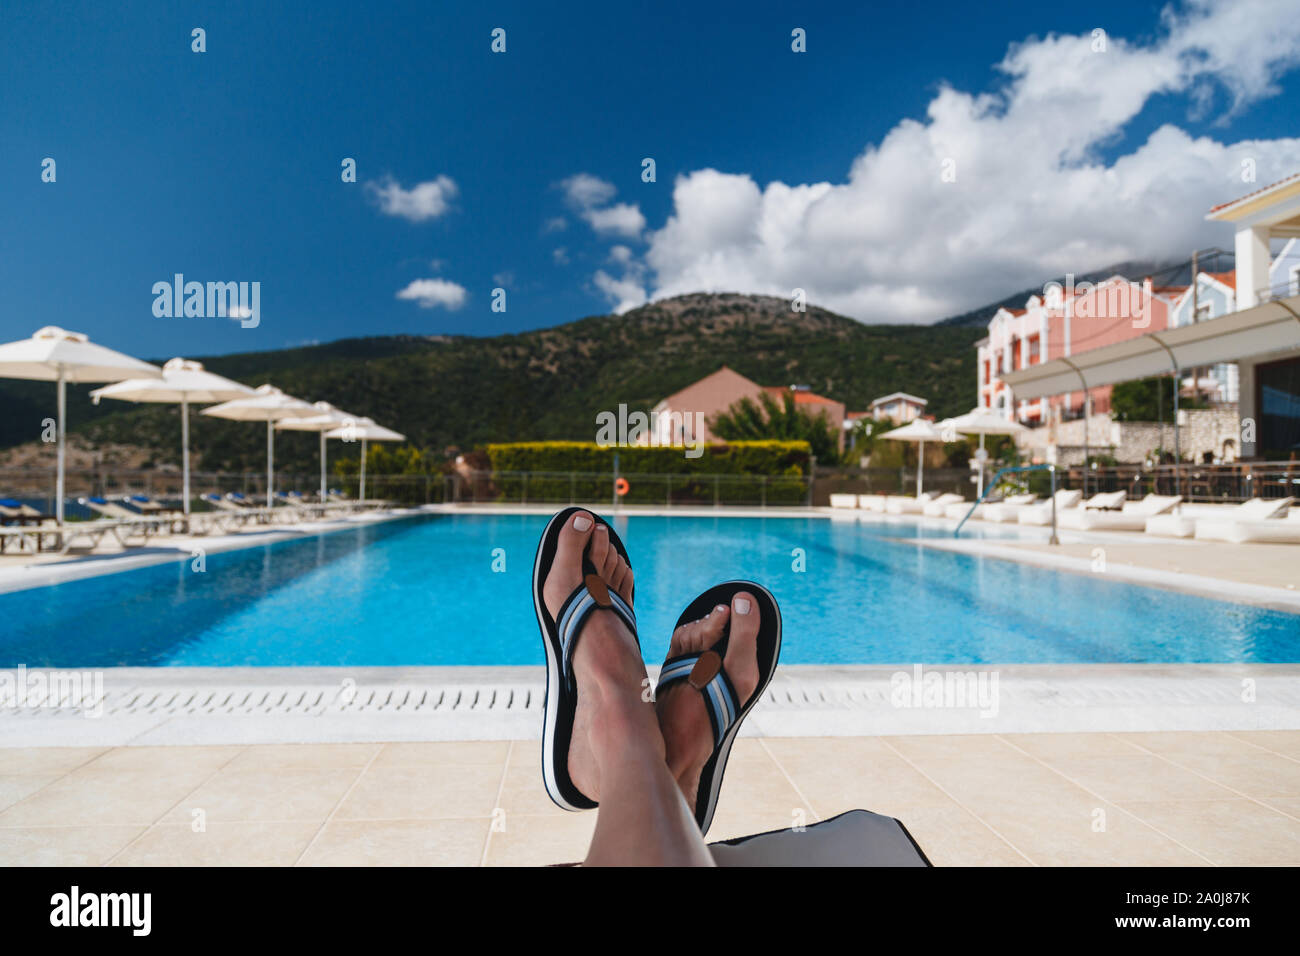 Close up view of young woman feet in blue flip-flops lying on a sun lounger with a swimming pool and blue sky at the background. Kefalonia island Stock Photo